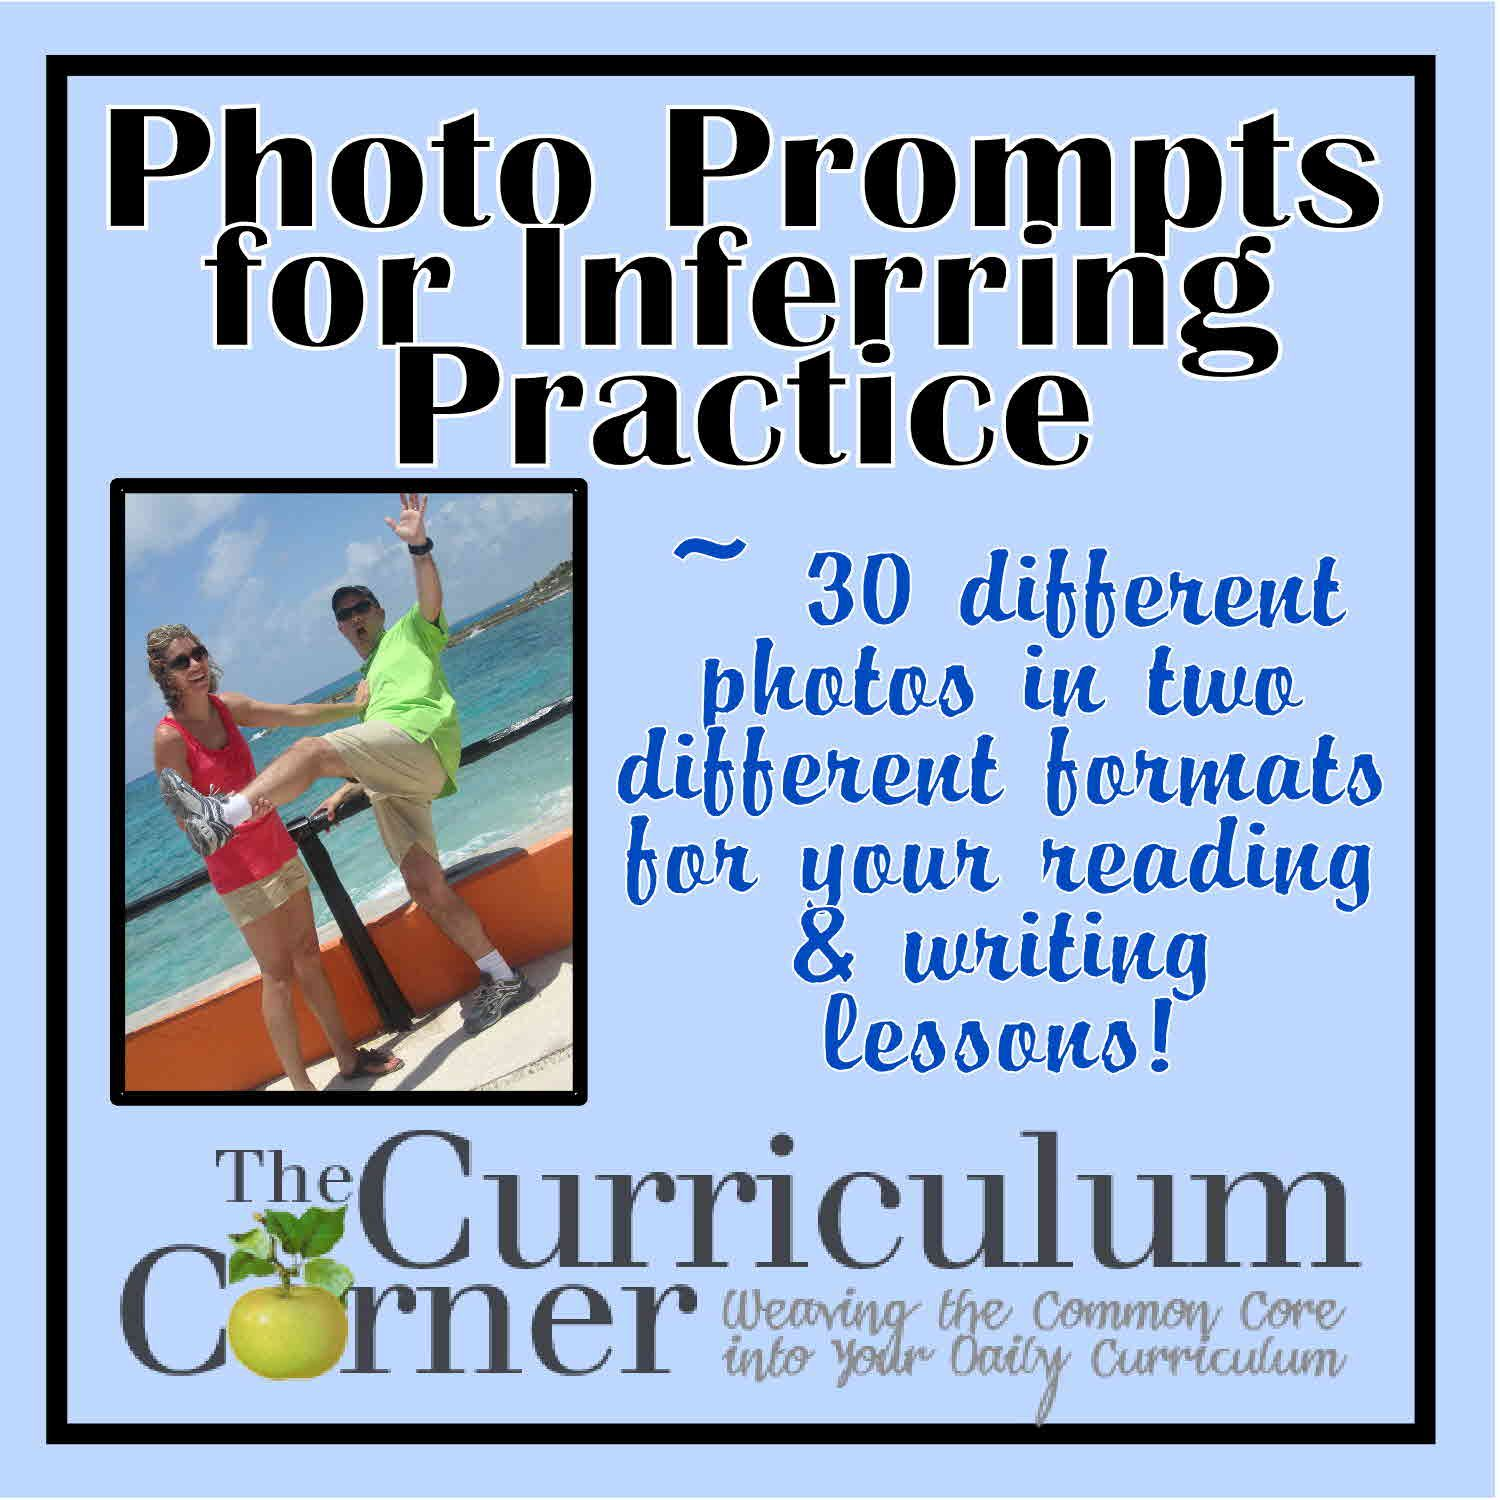 Inferring From Photo Prompts